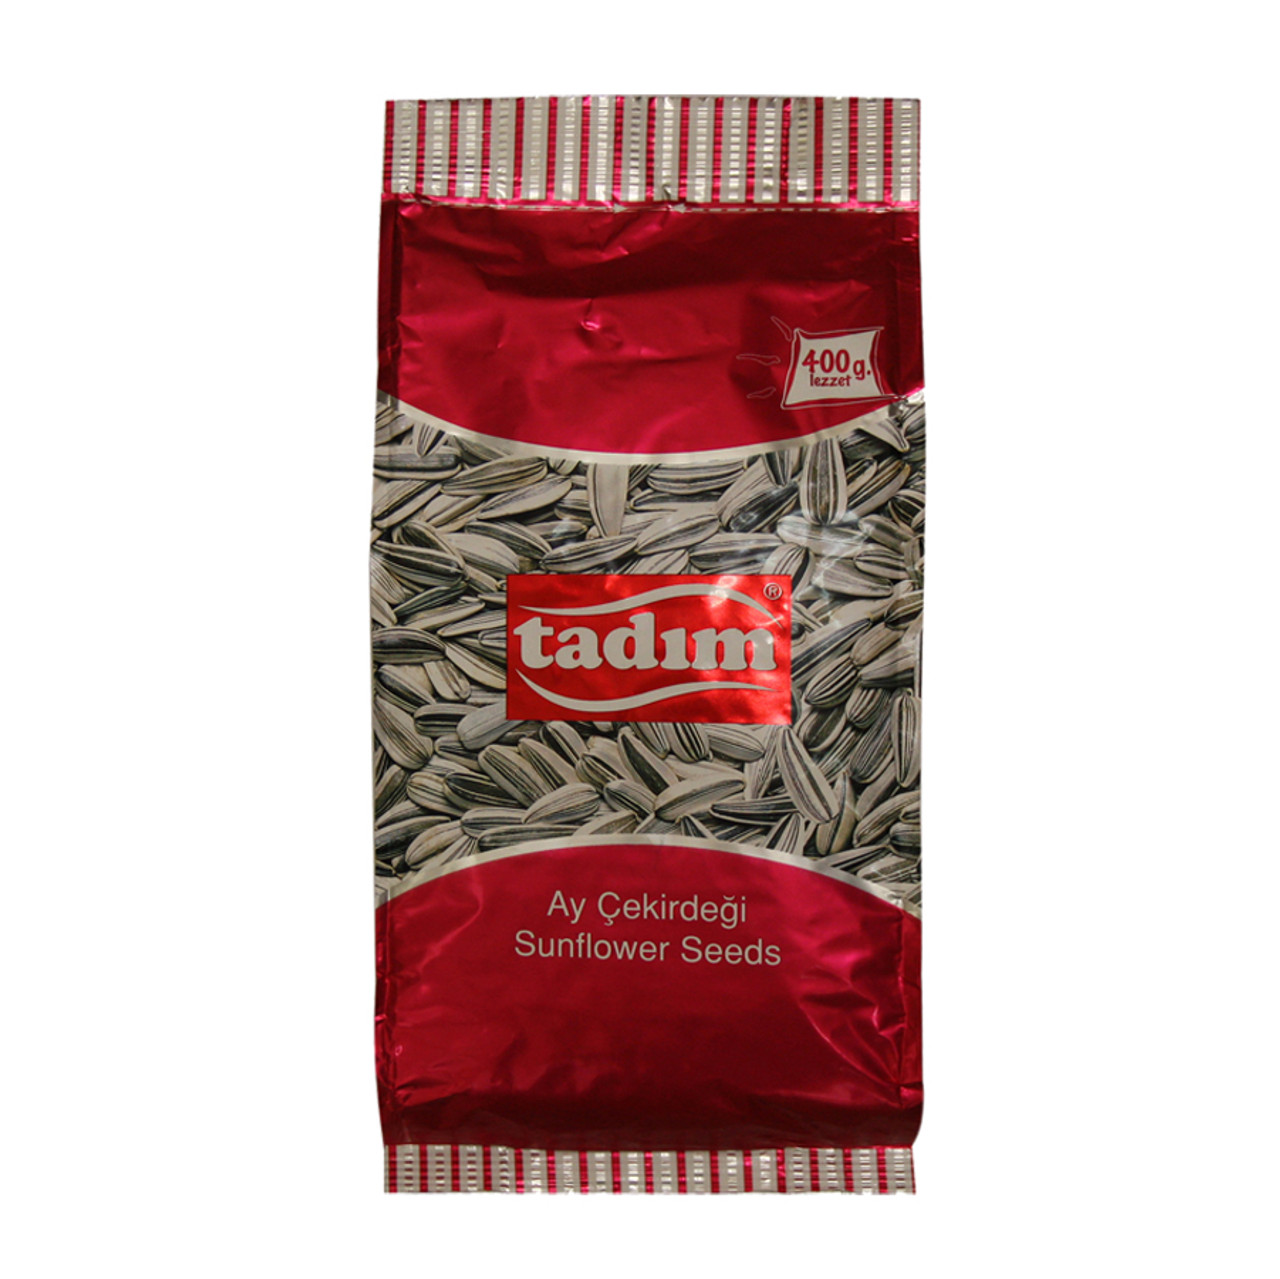 TADIM Sunflower Seeds 360g